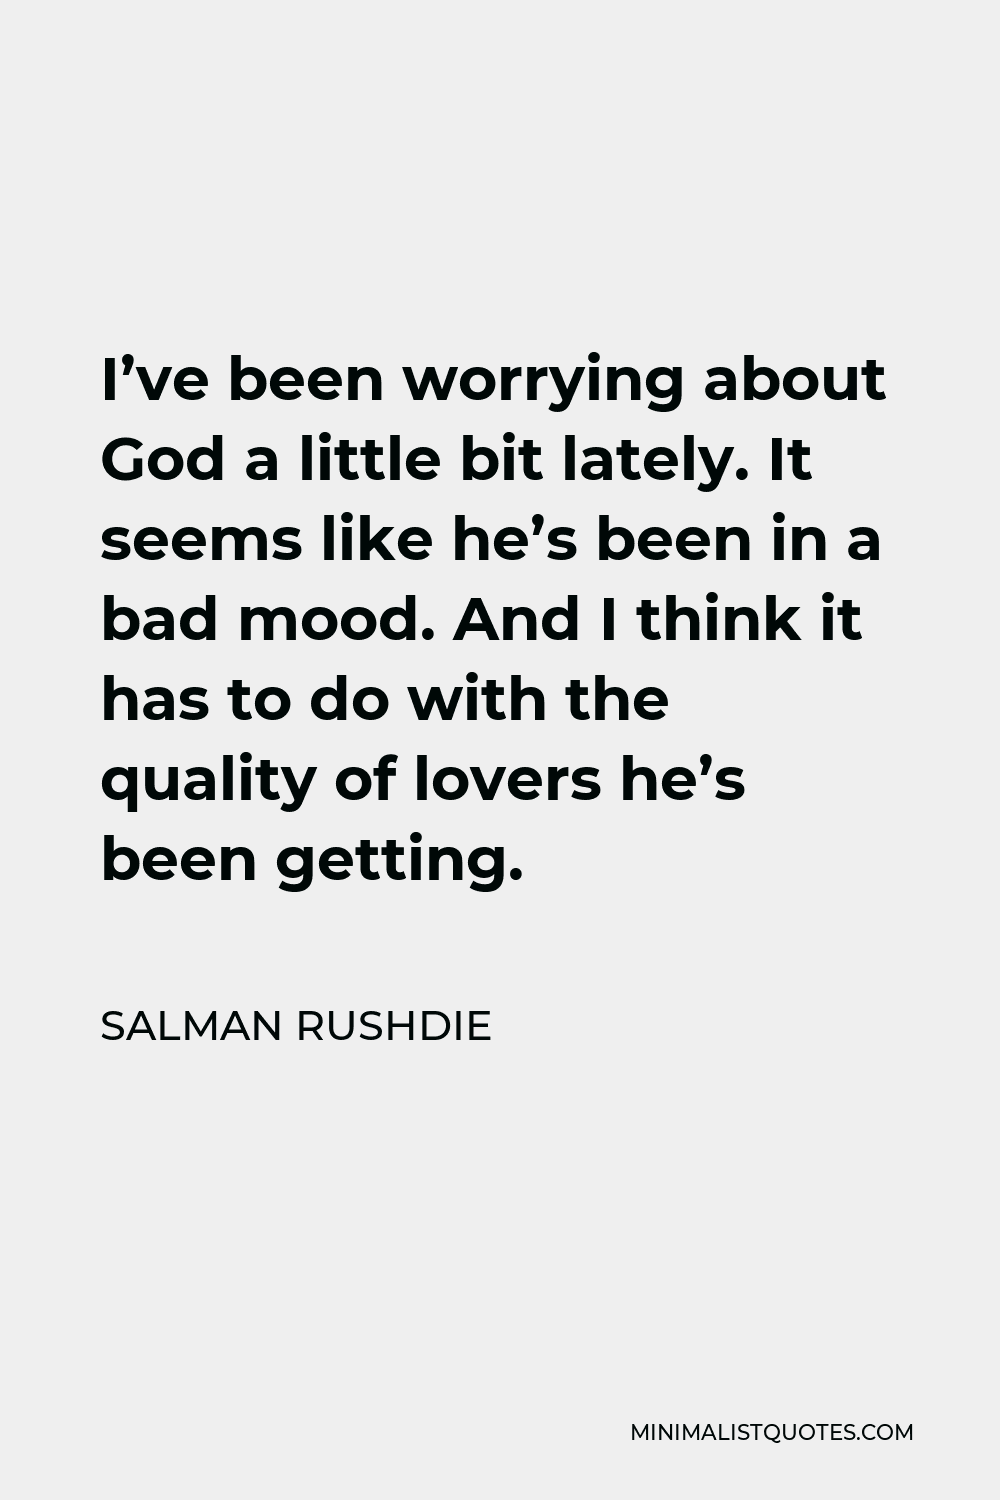 Salman Rushdie Quote - I've been worrying about God a little bit lately. It seems like he's been in a bad mood. And I think it has to do with the quality of lovers he's been getting.